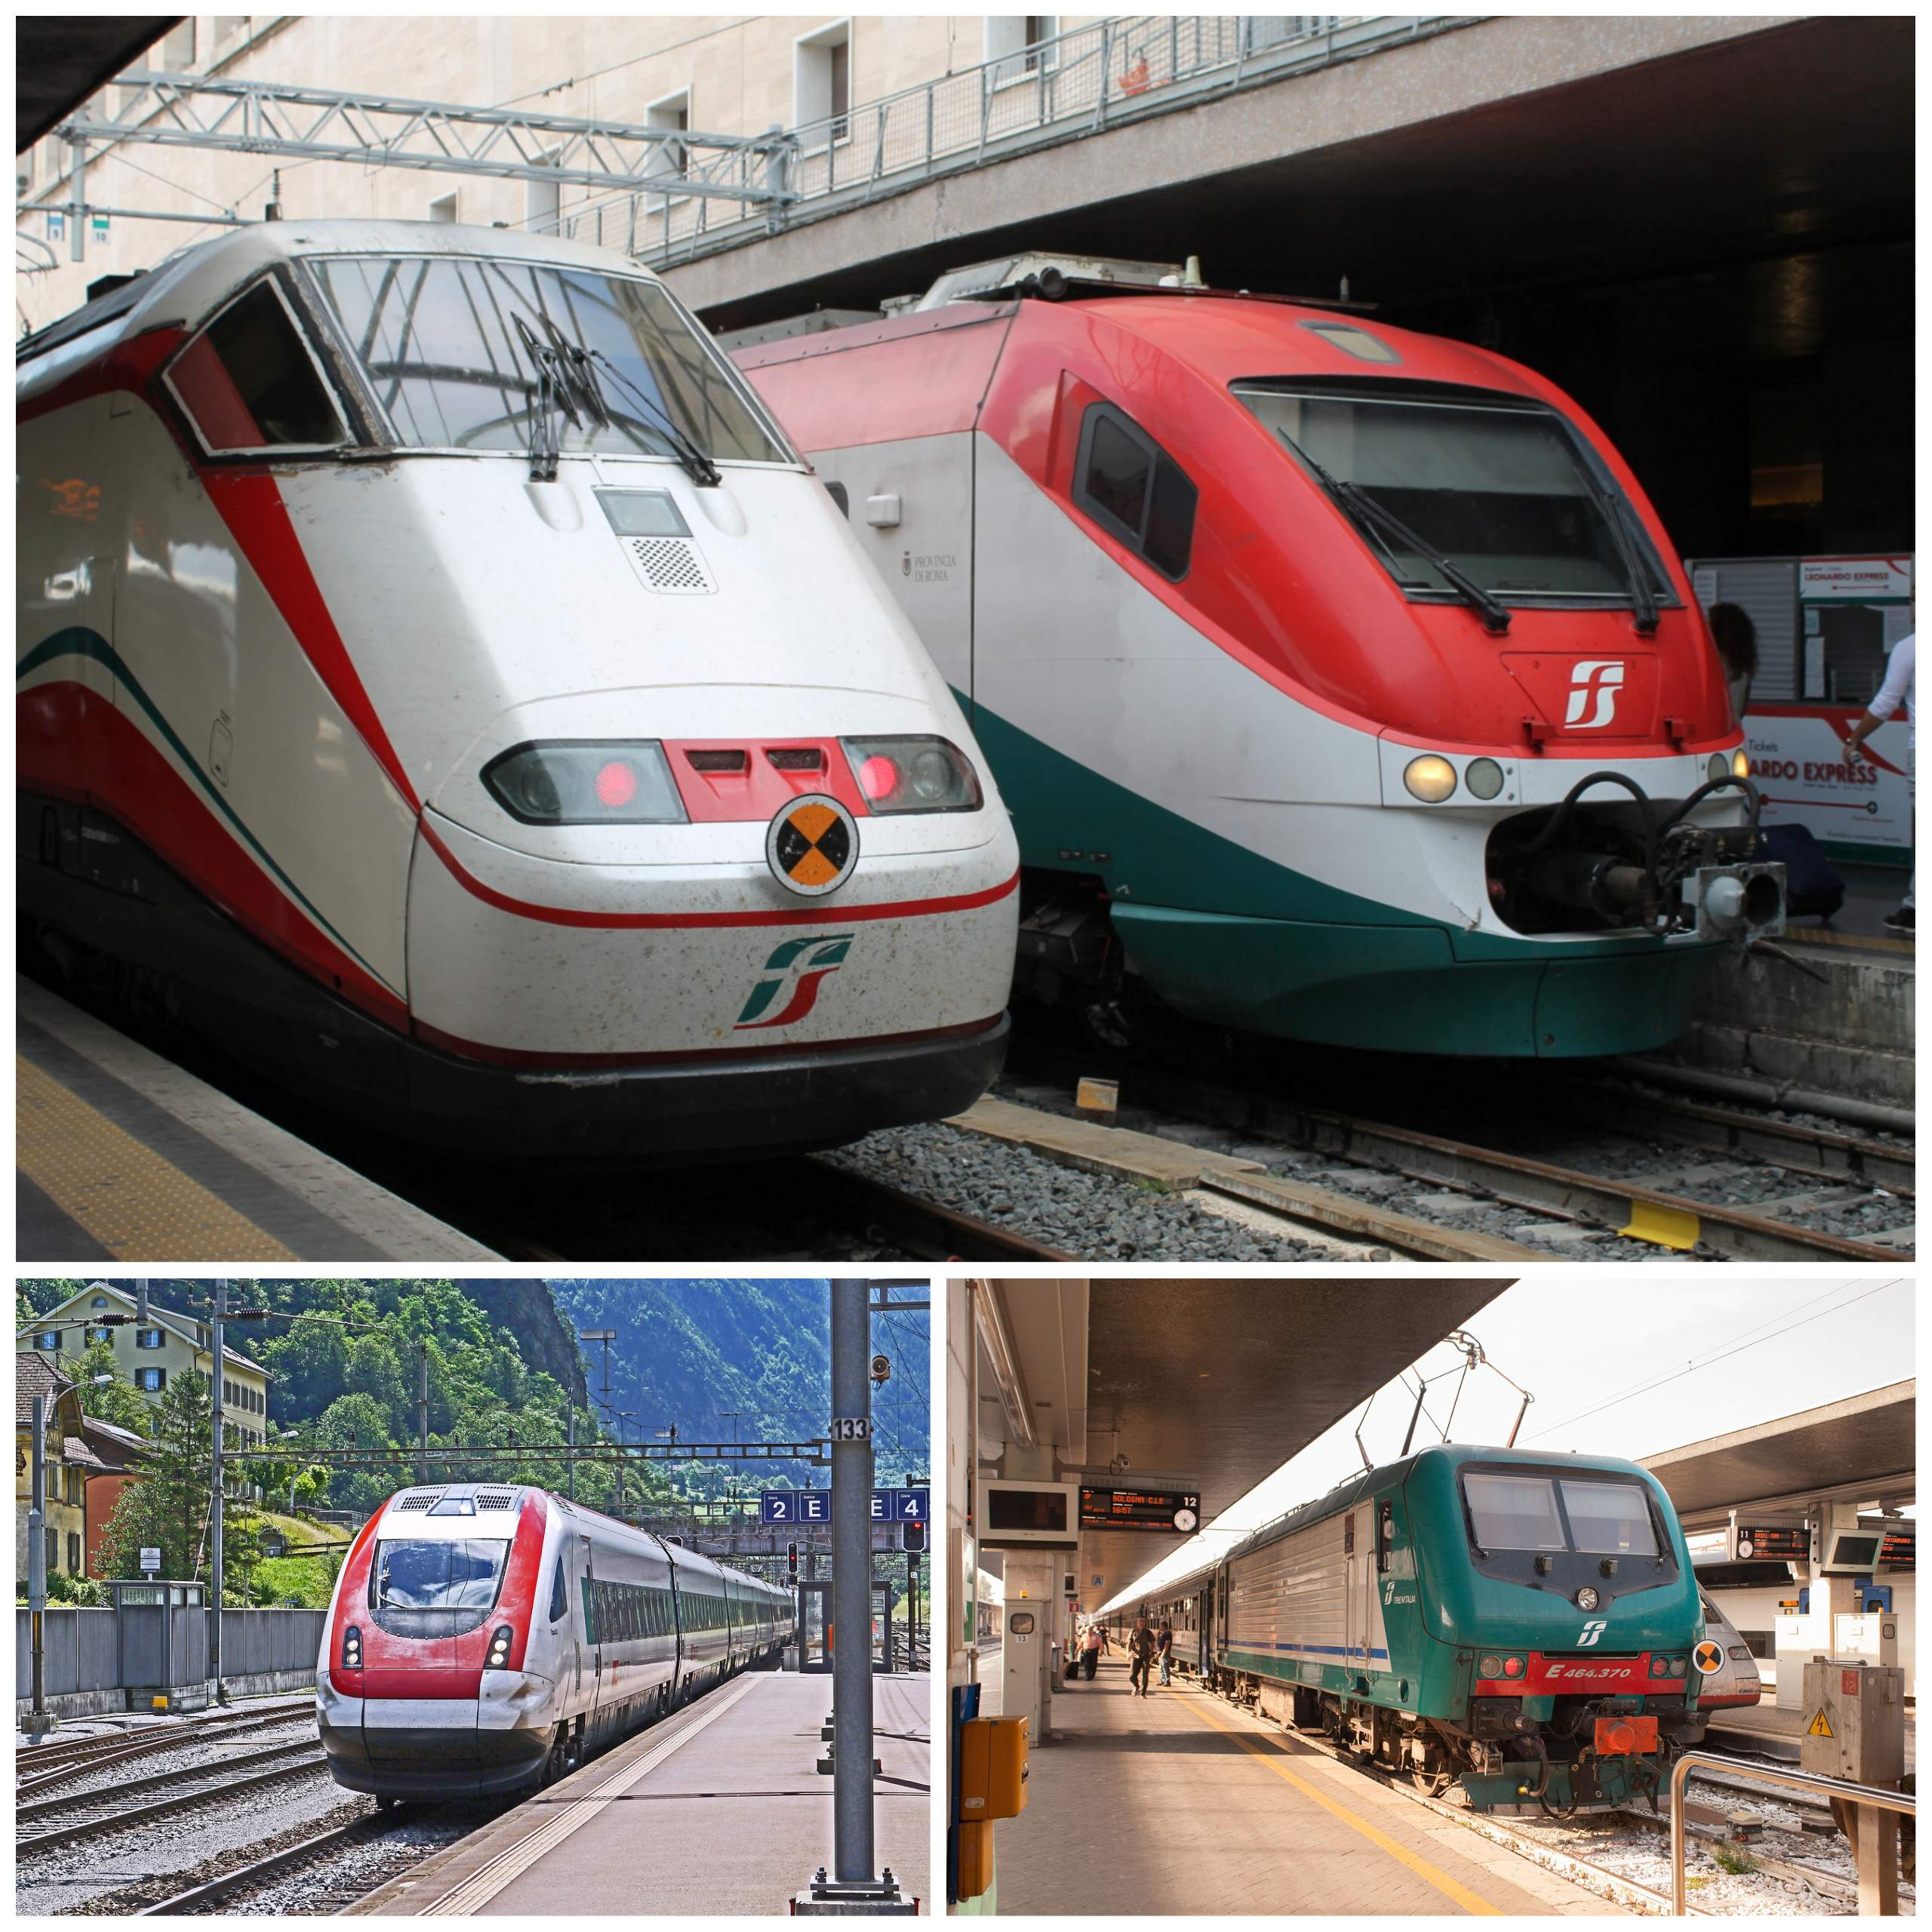 Beginner's Guide to Riding the High Speed Trains in Italy